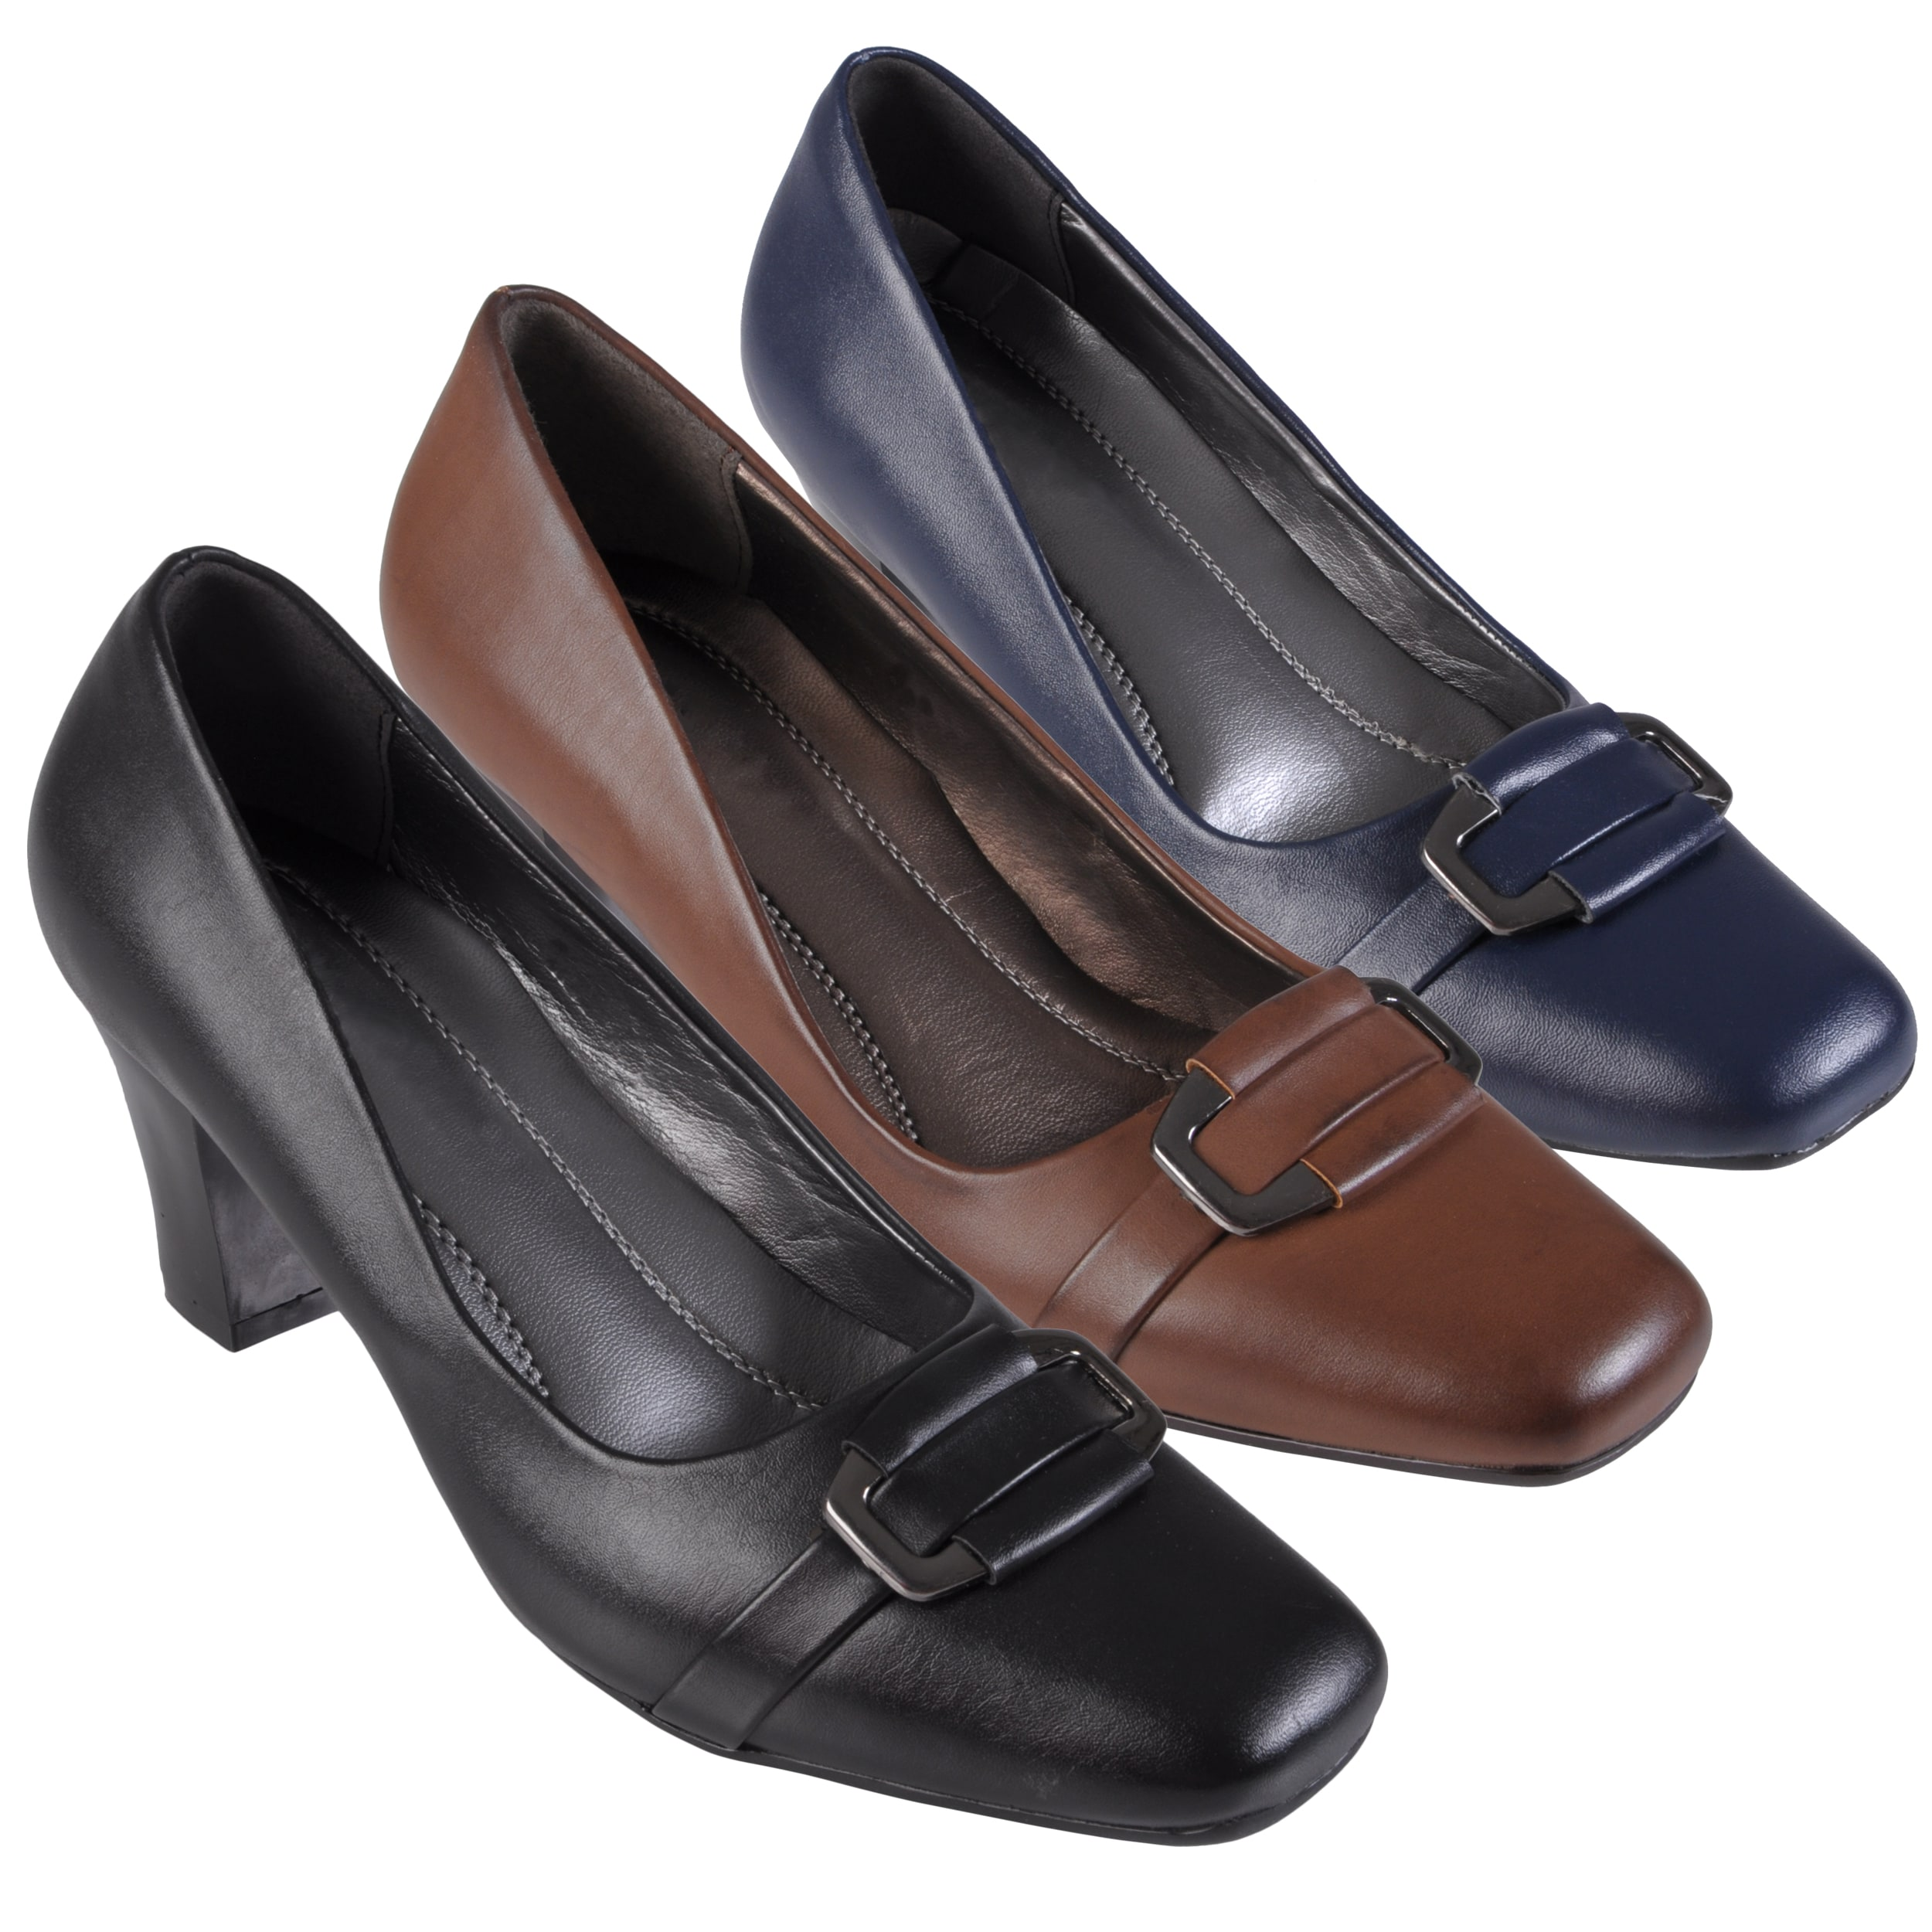 Journee Collection Women's 'Cary-14' Faux Leather Square Toe Loafers